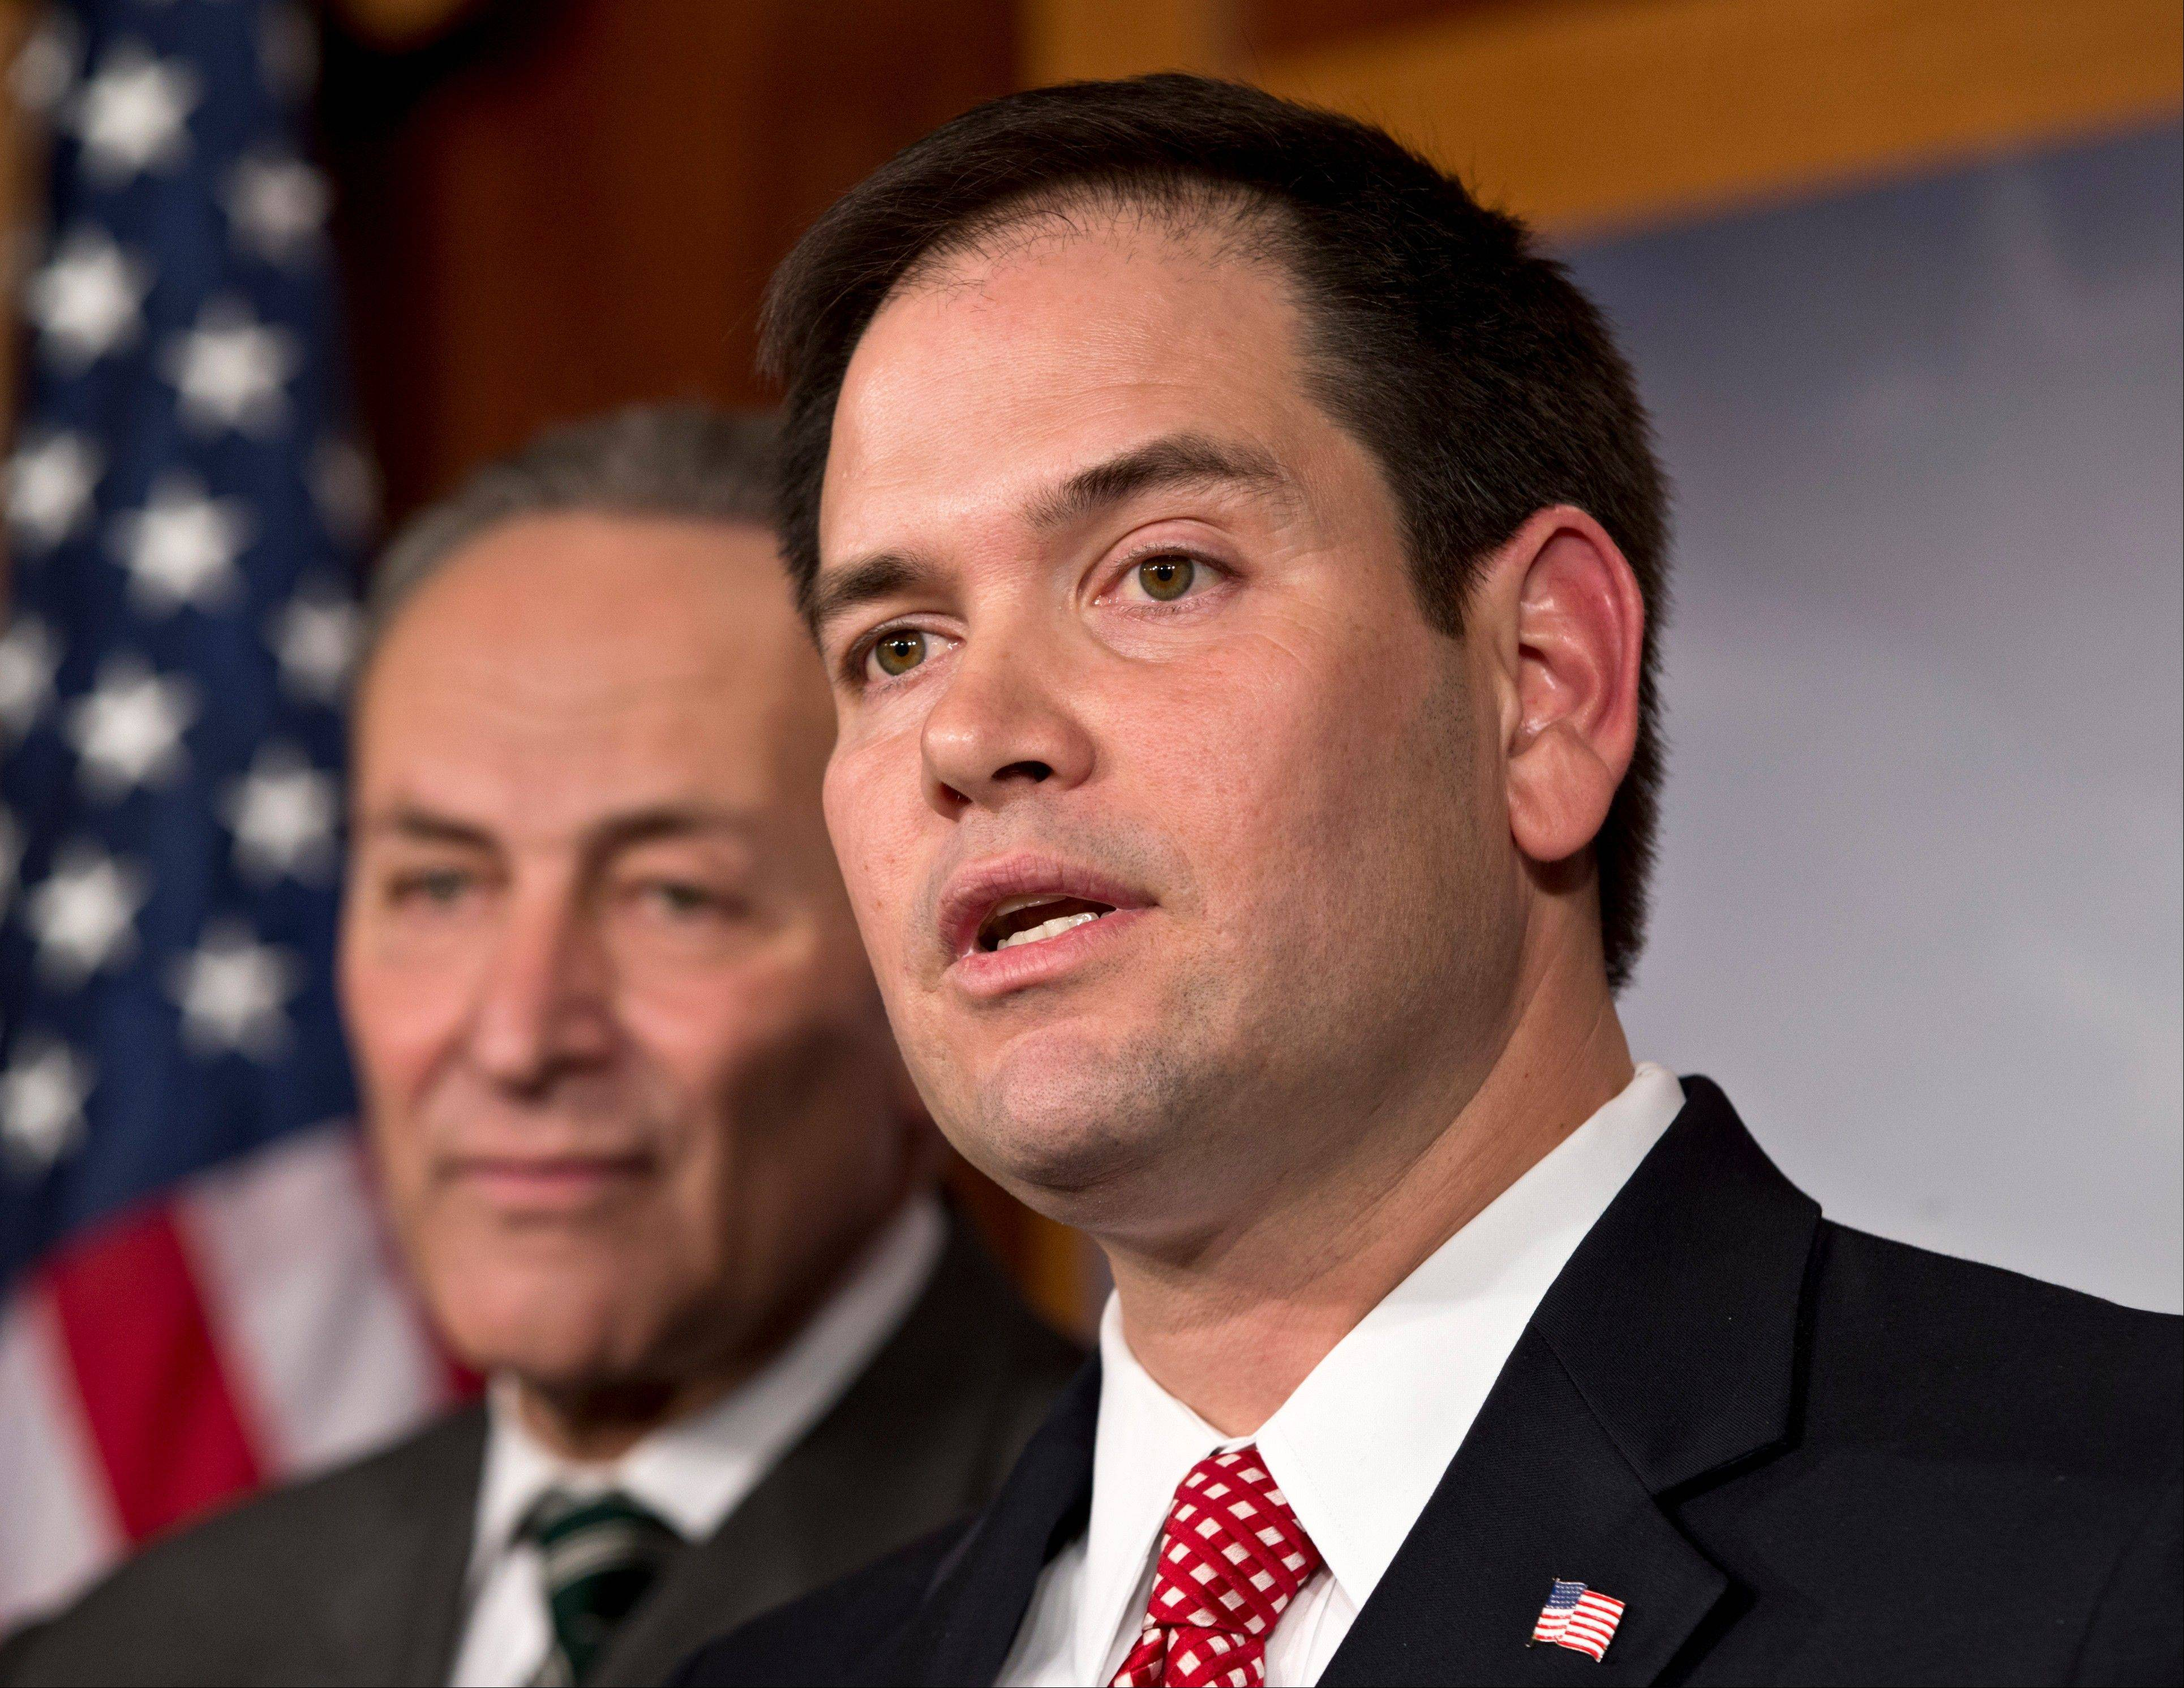 Sen. Marco Rubio, right, and Sen. Charles Schumer, left, are part of a bipartisan group of leading senators to announce that they have reached agreement on the principles of sweeping legislation to rewrite the nation�s immigration laws.